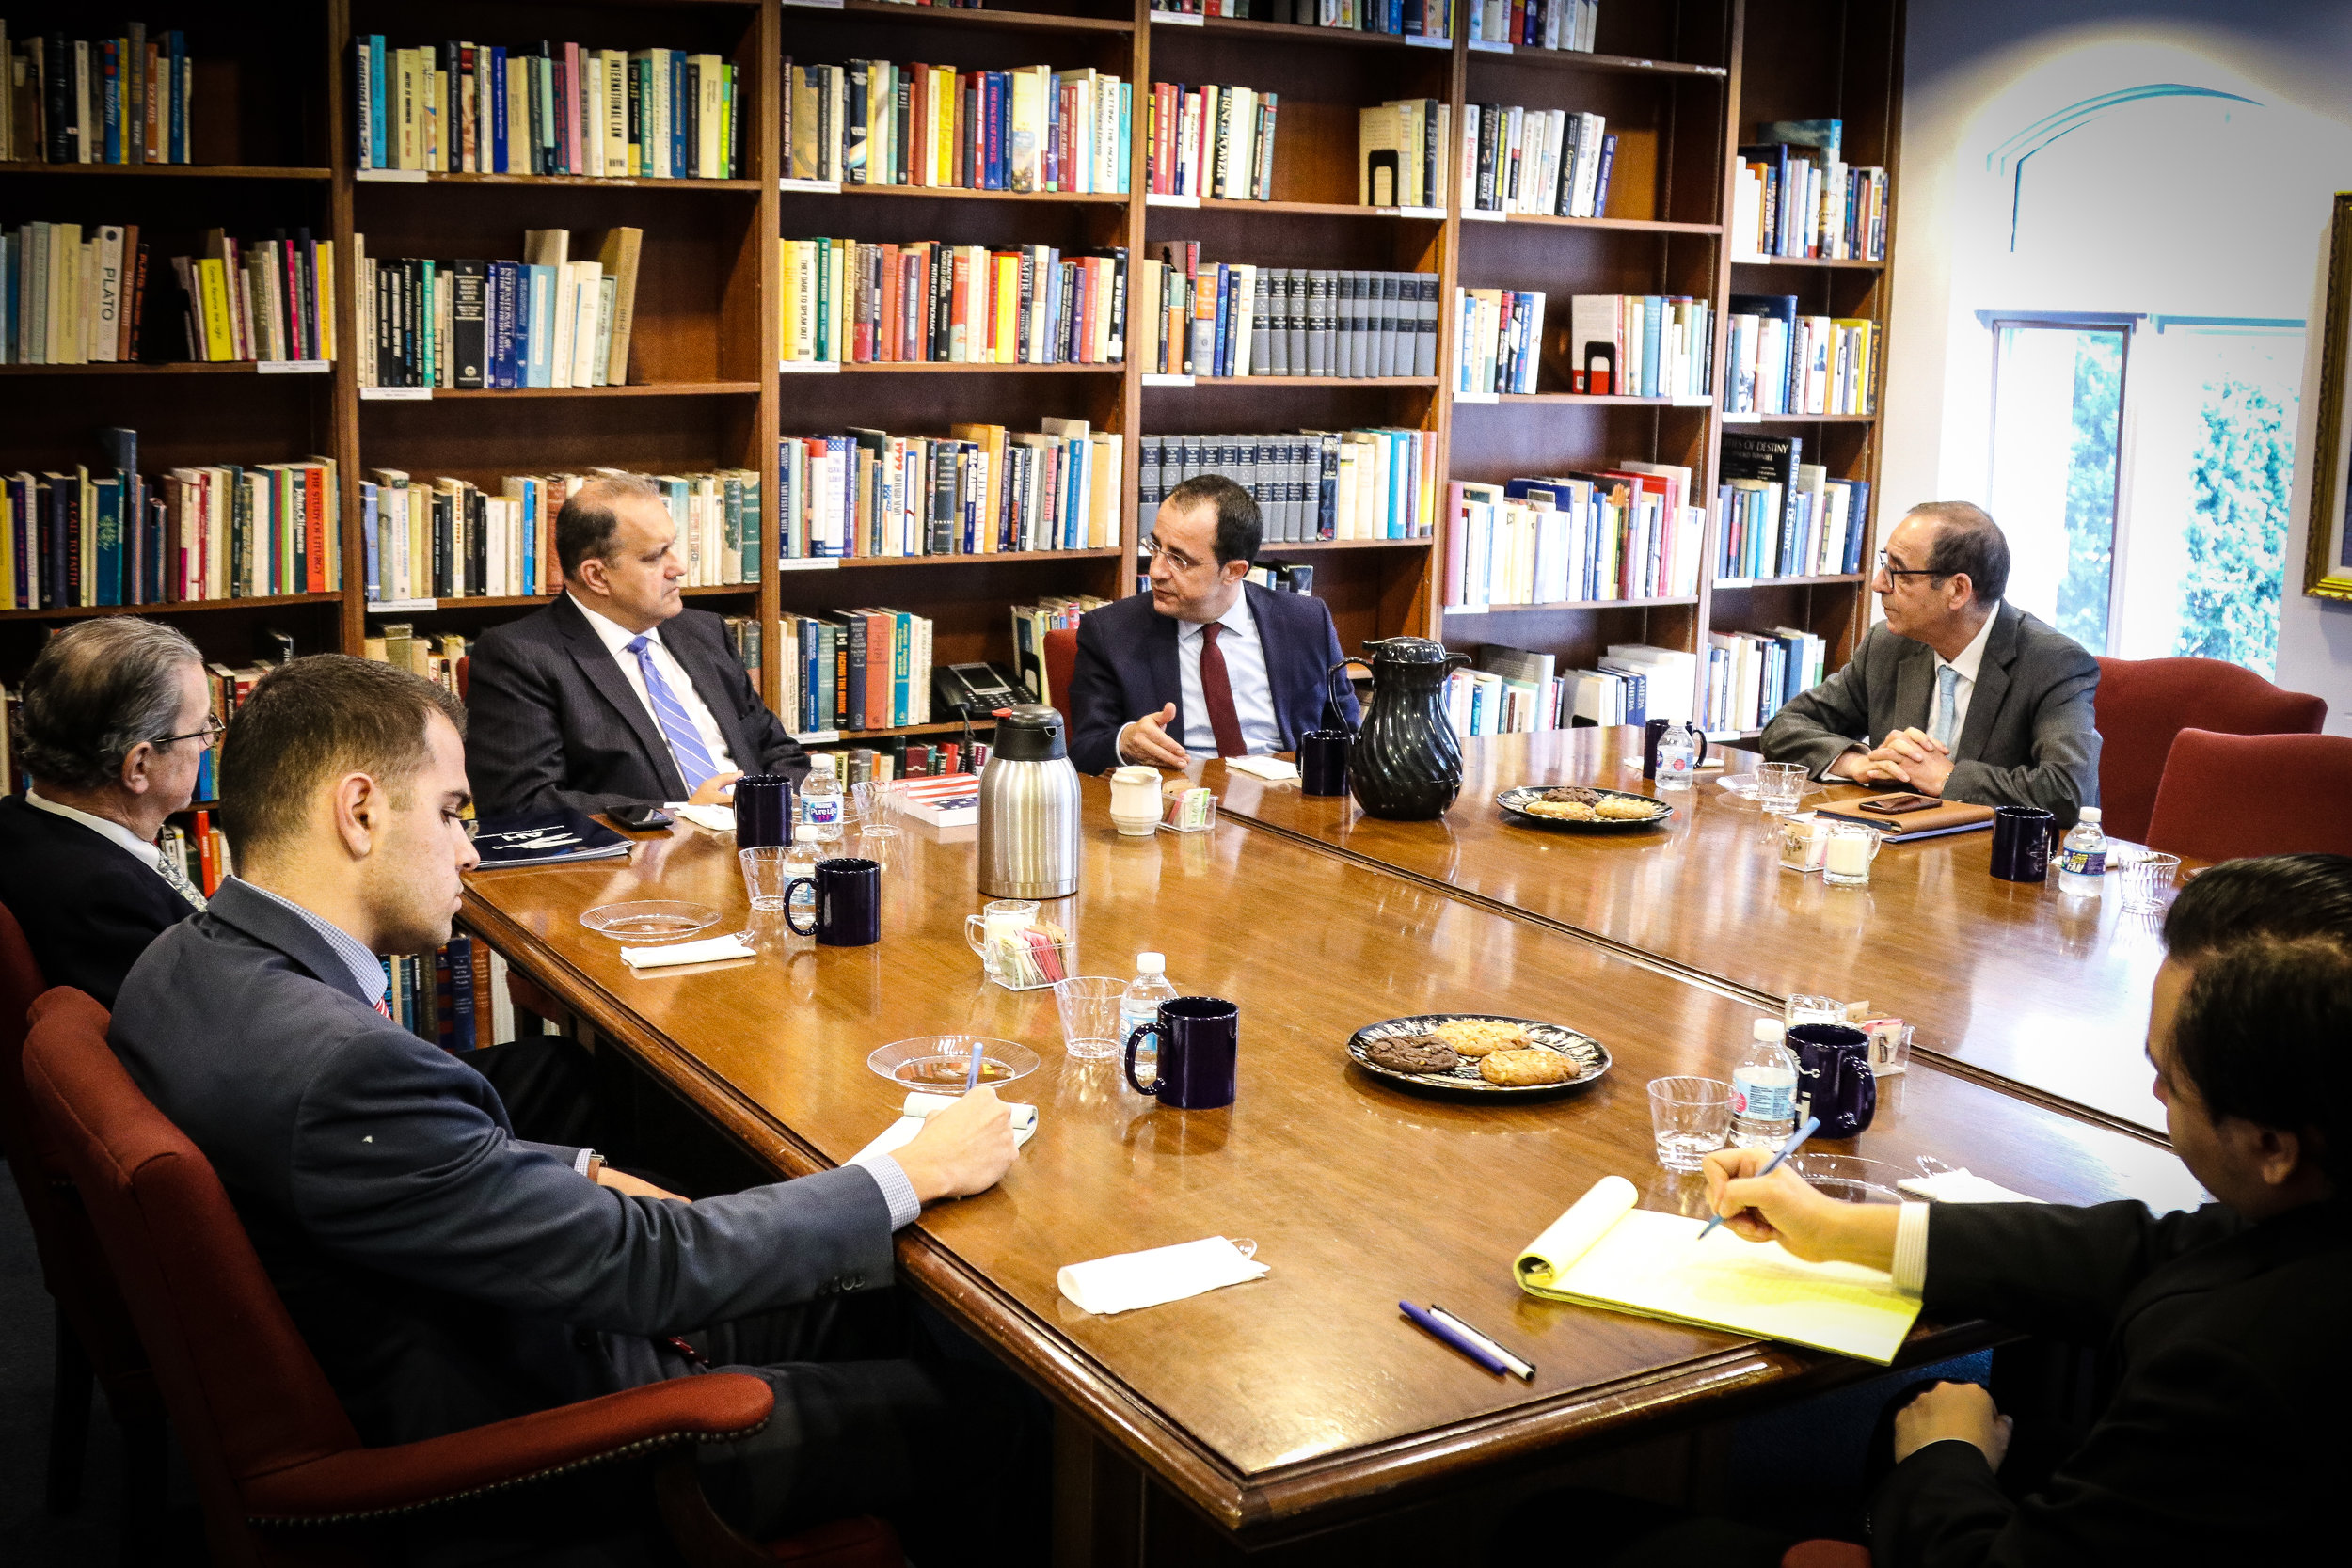 Foreign Minister Christodoulides discusses U.S.-Cyprus relations with AHI.